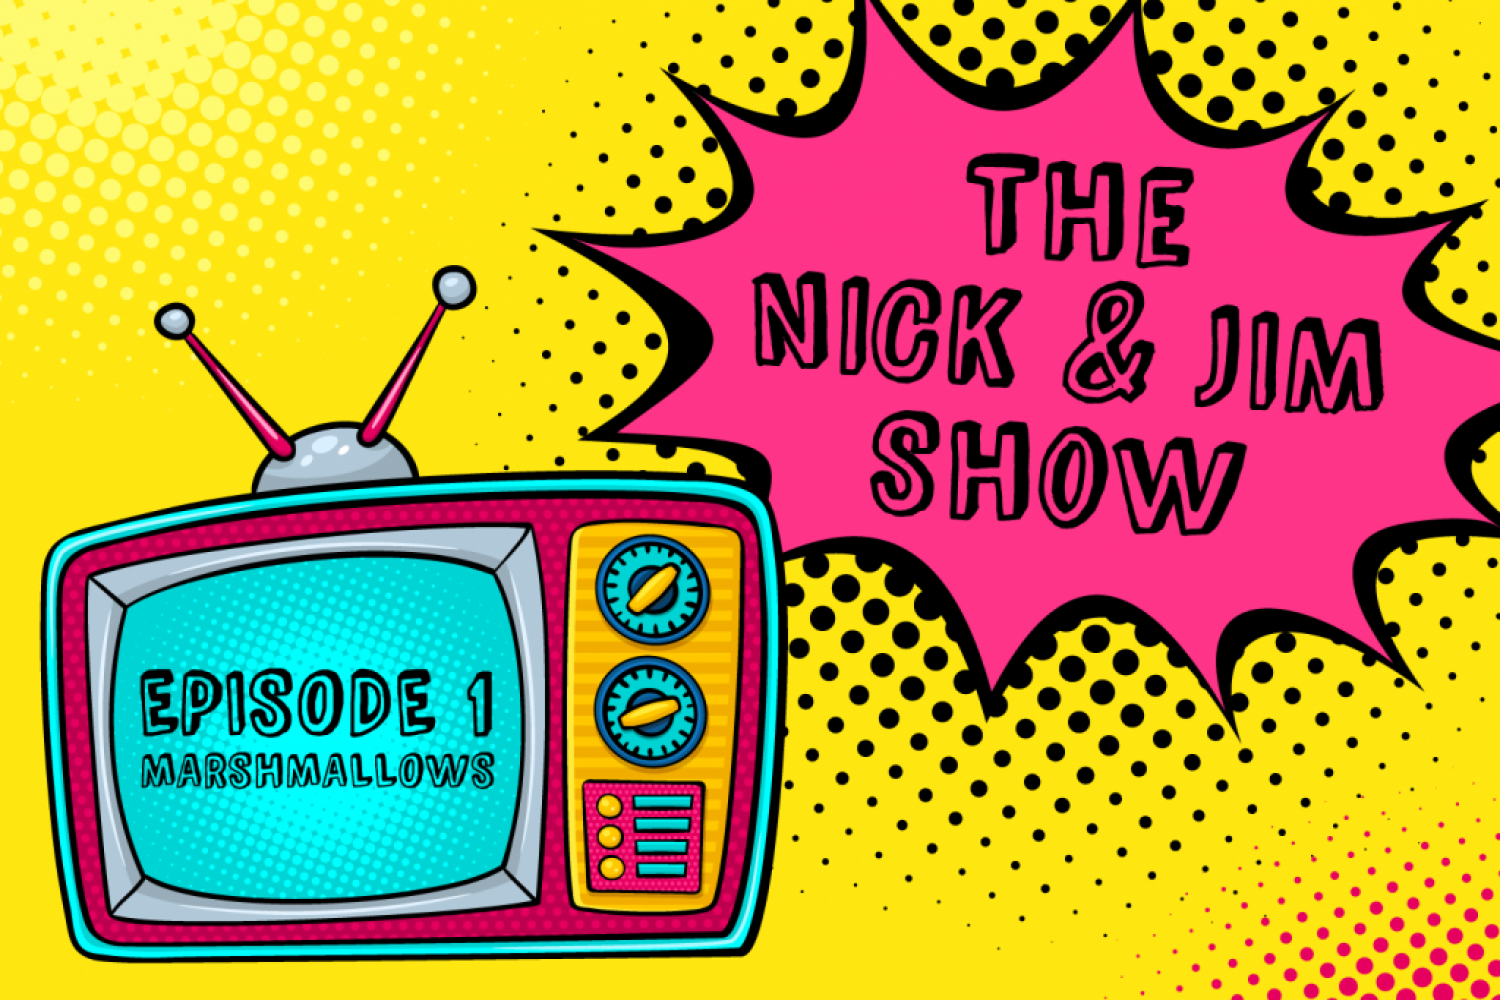 The-Nick-and-Jim-Show-episode-1